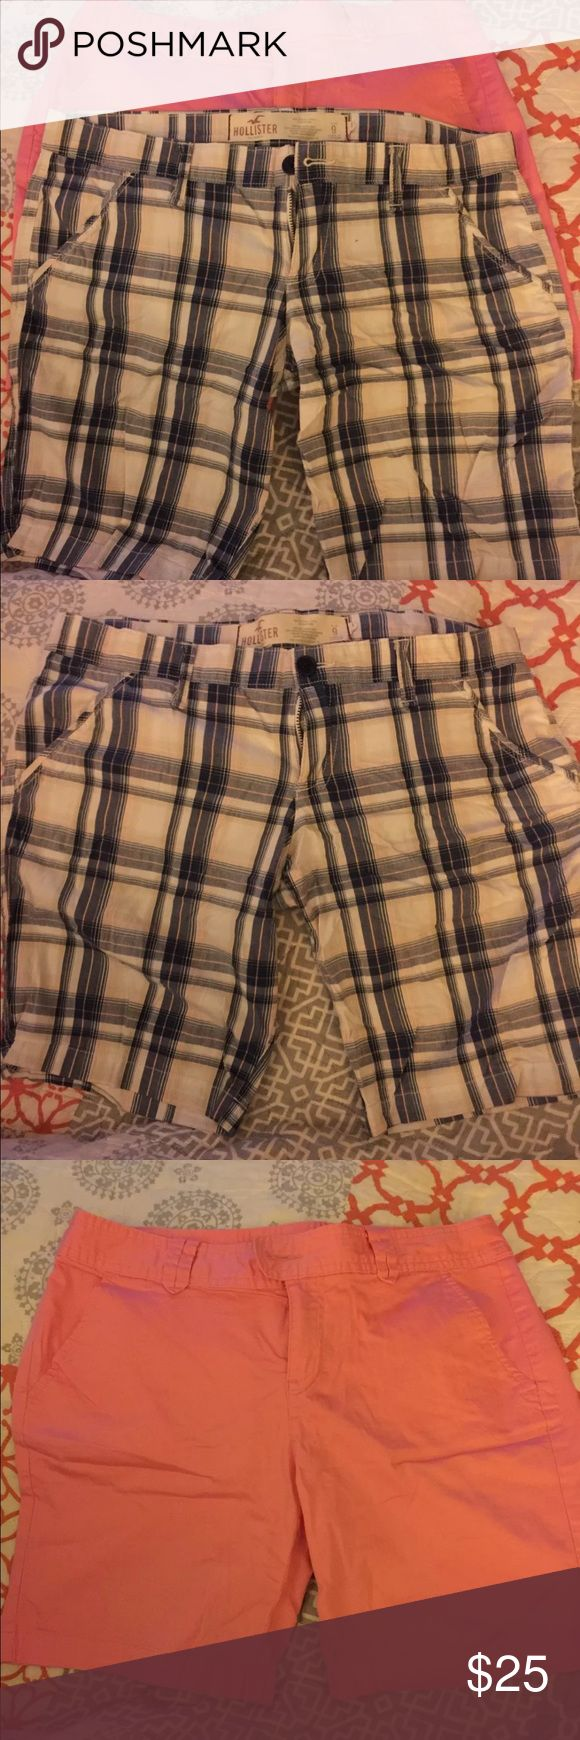 Hollister and Red Camel Shorts Bundle Hollister- plaid with white/blue/pink and Red Camel- Pink Hollister and Red Camel Shorts Bermudas